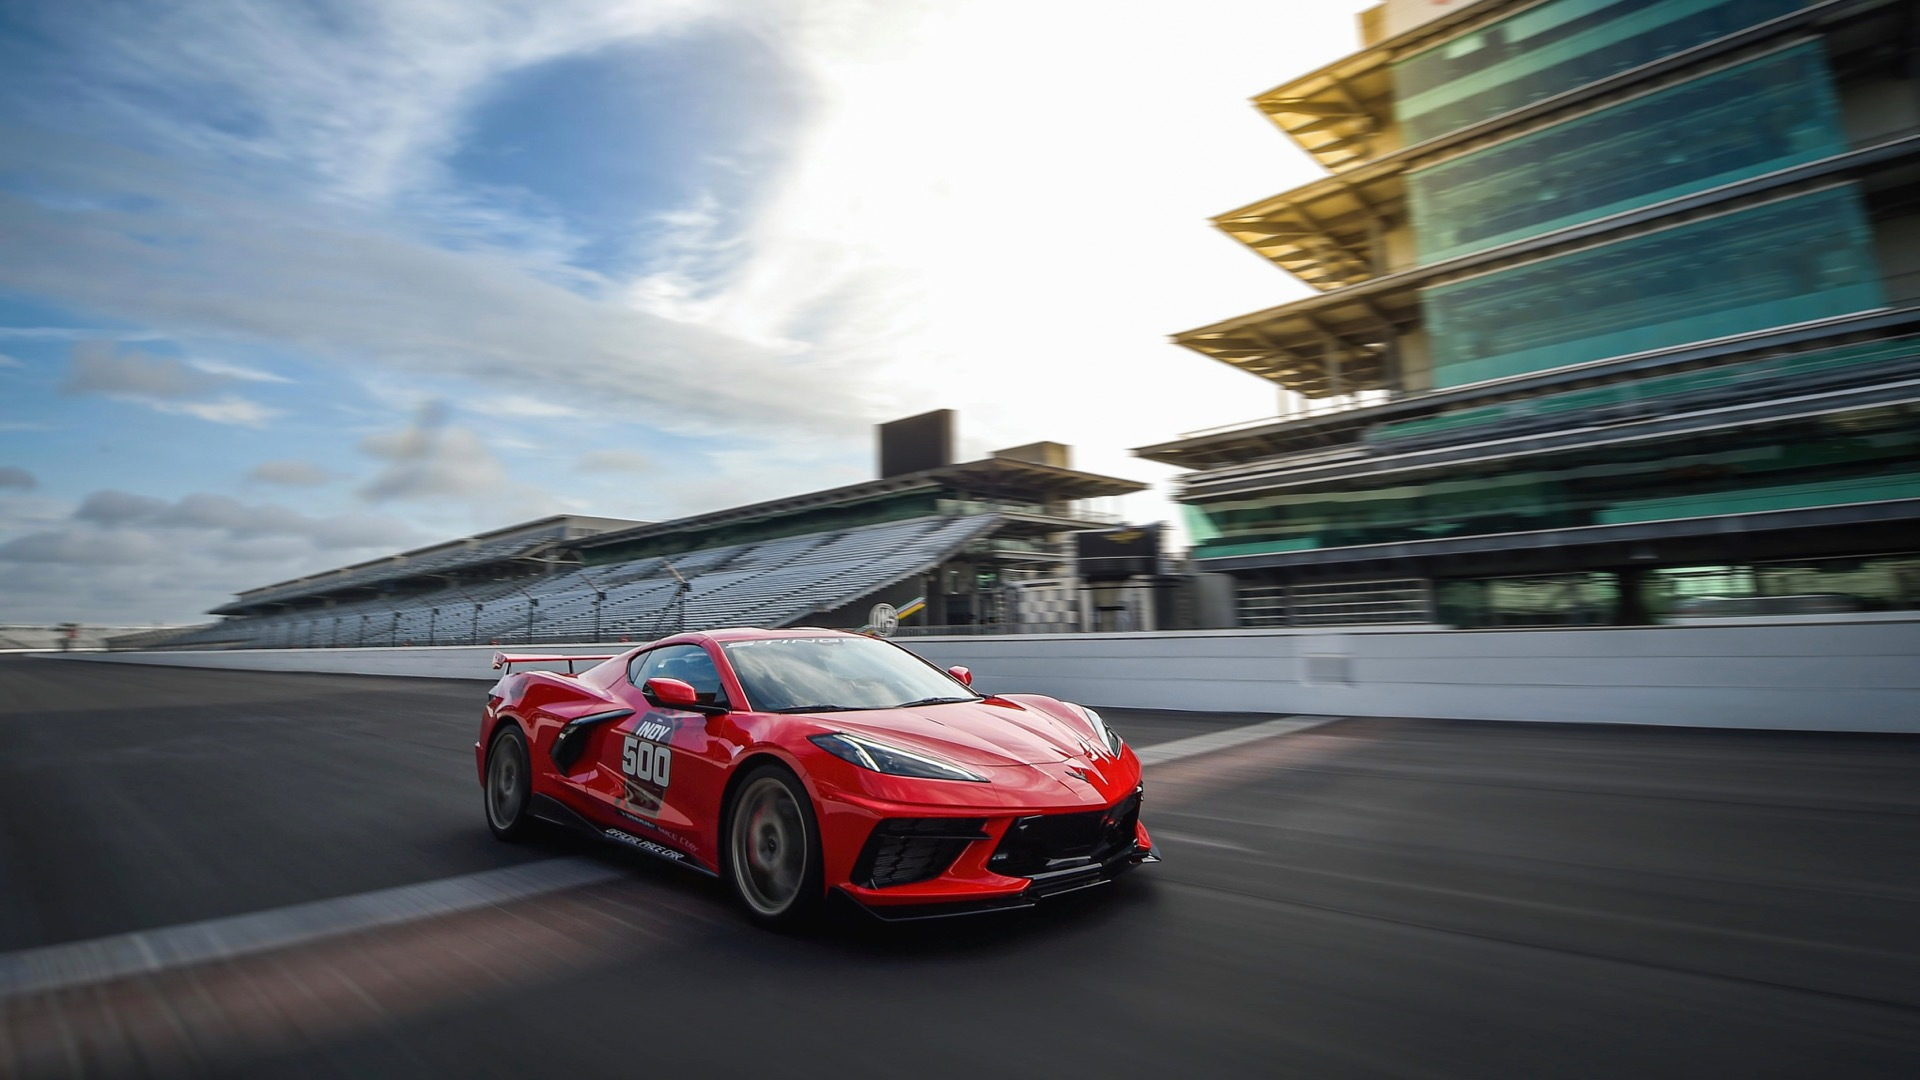 2020 Chevrolet Corvette Stingray Indianapolis 500 pace car